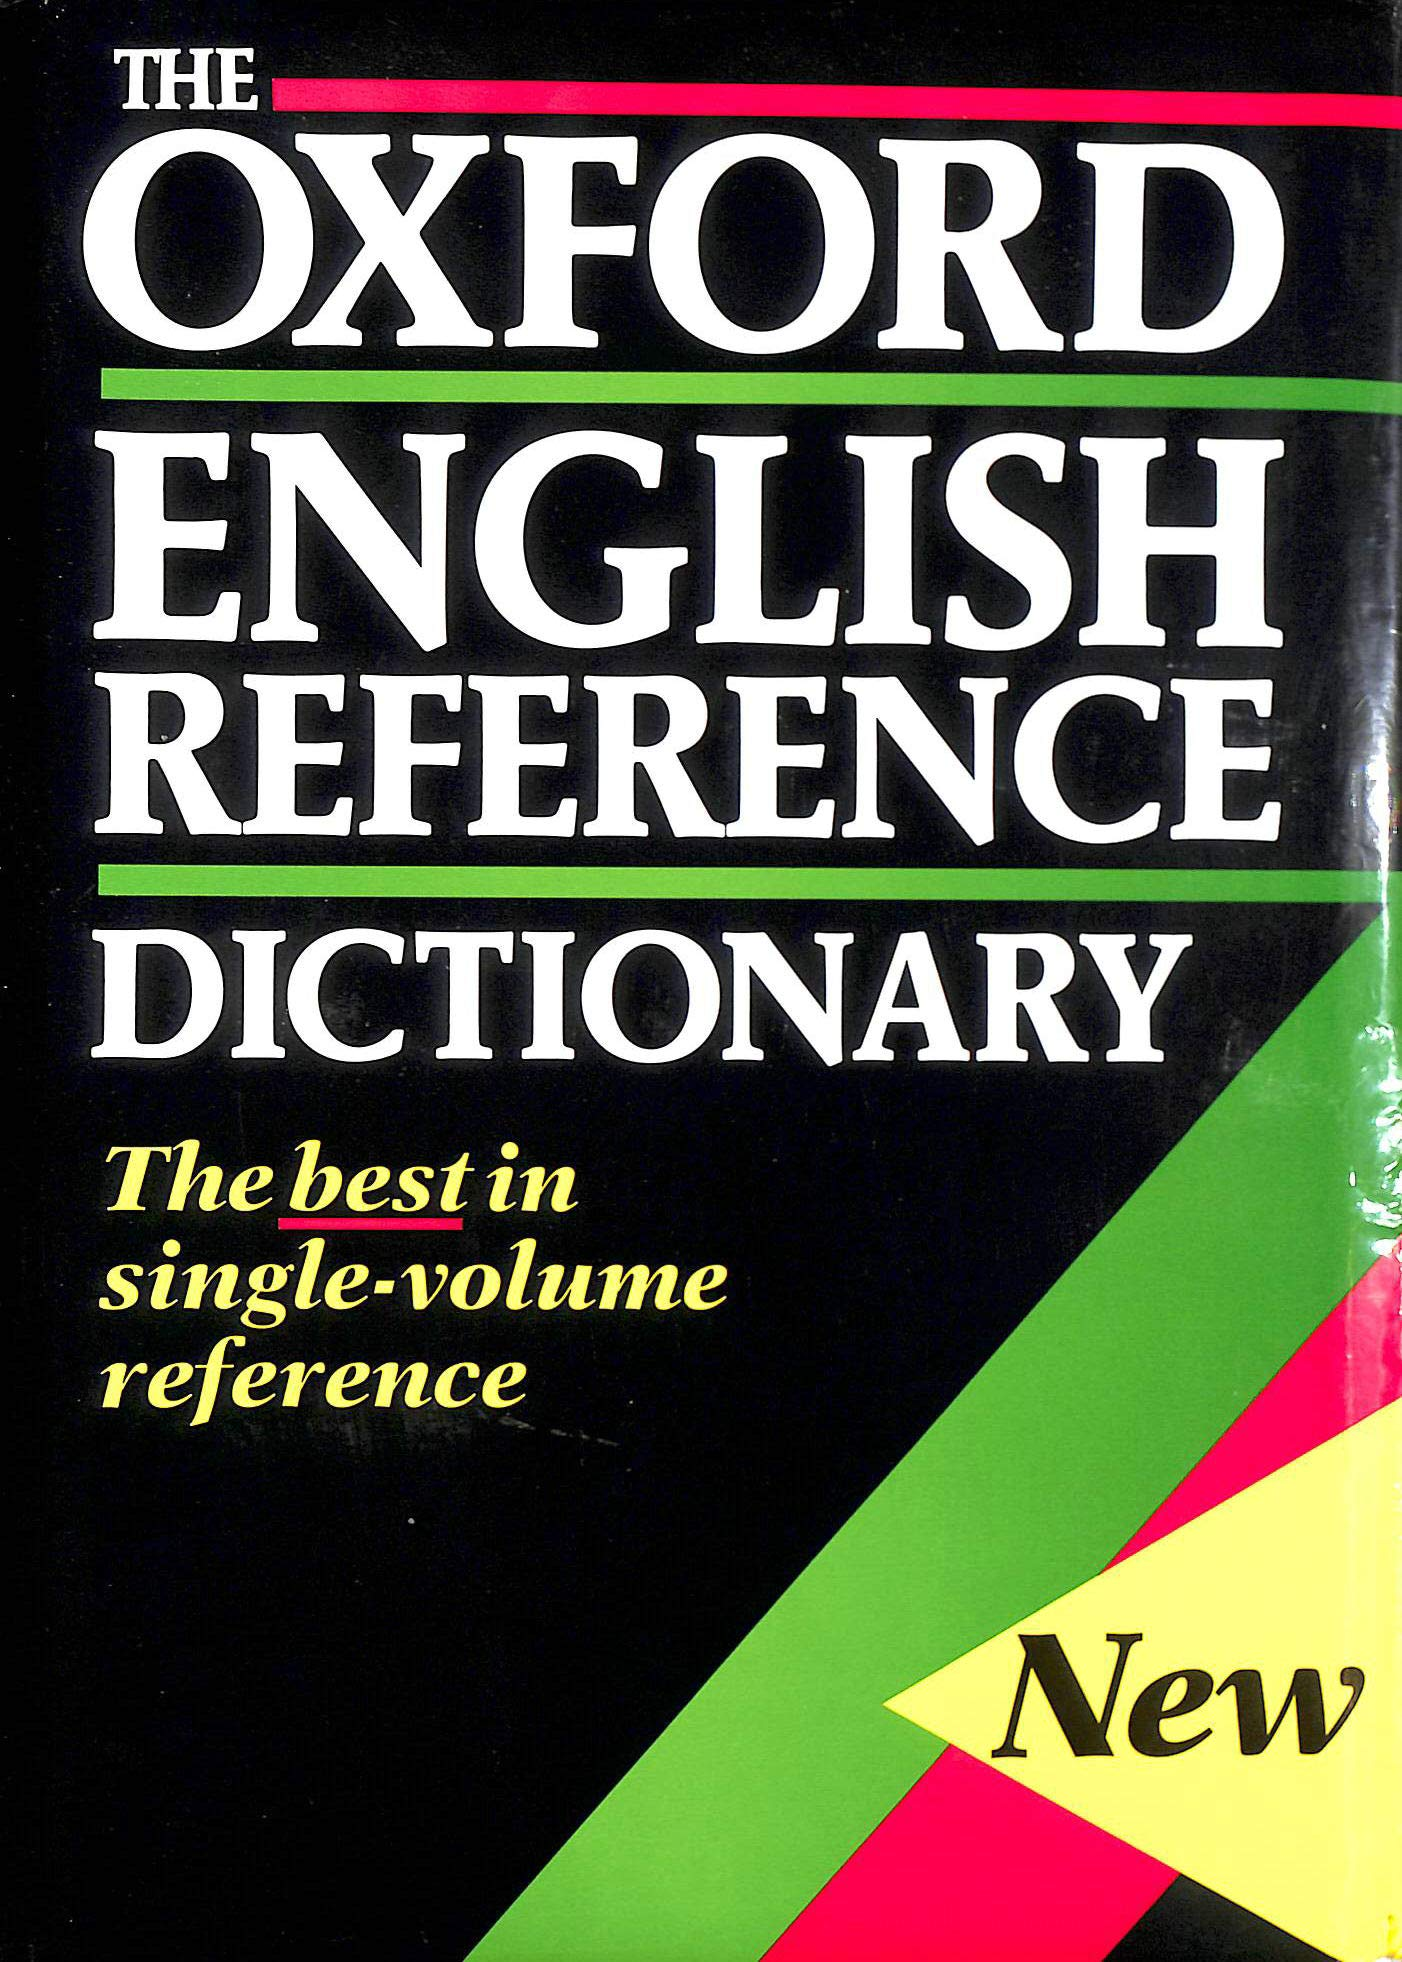 The Oxford English Reference Dictionary: Amazon.co.uk: Judy Pearsall, Bill  Trumble: 9780198613084: Books